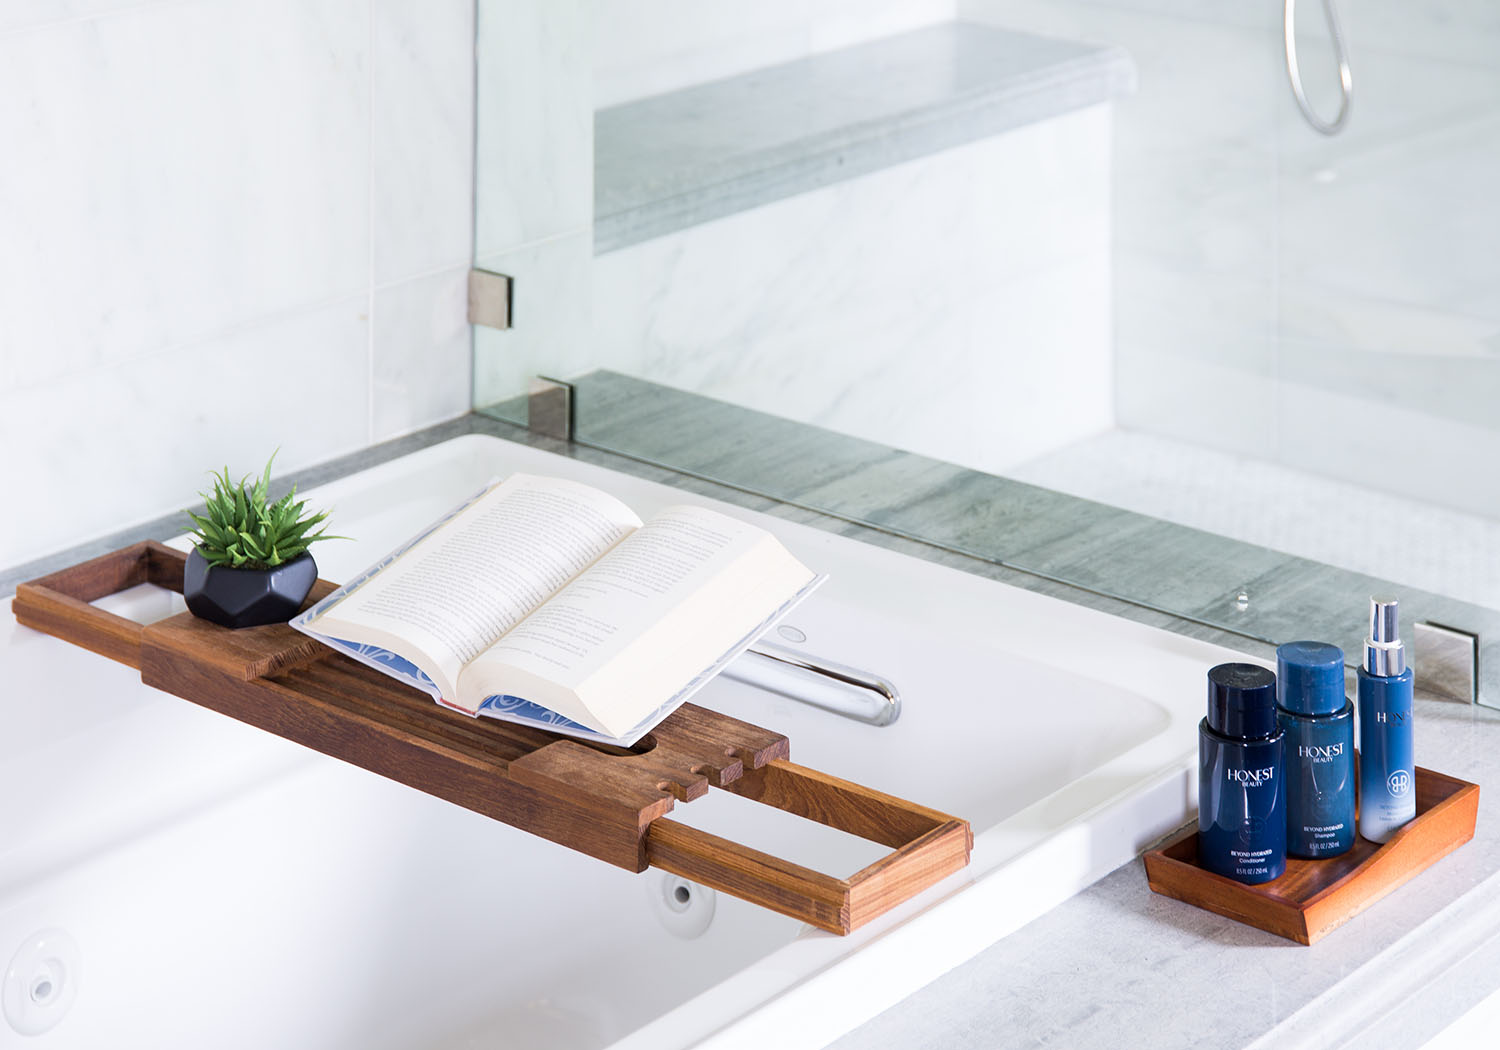 This wooden bath tray can keep your book or phone safe while you relax in the tub.